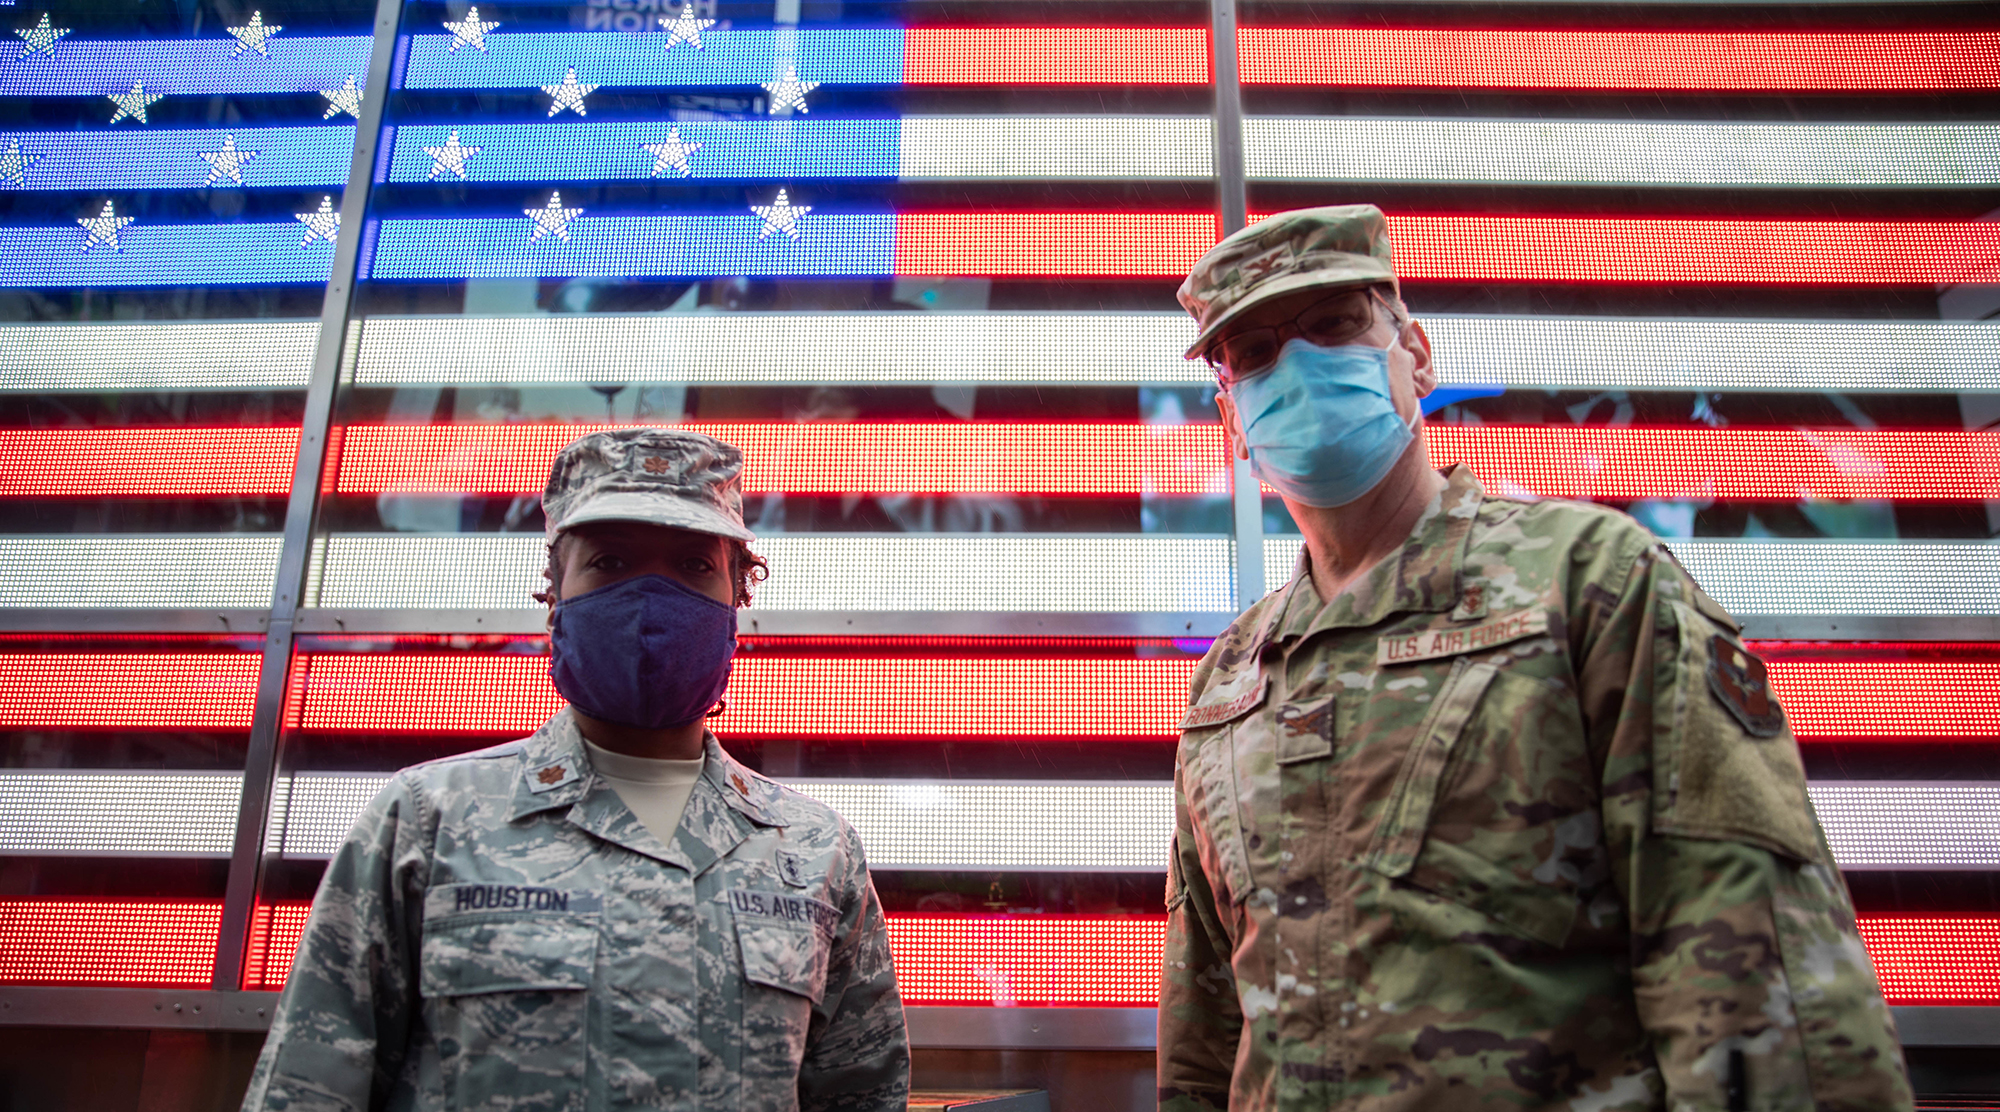 Air Force Maj. Tynikka Houston and Air Force Col. Edward Ronnebaum, both assigned to New York Health Hospitals Jacobi, are deployed to New York City in support of the Department of Defense COVID-19 response, May 8, 2020. (Spc. Genesis Miranda/Army)